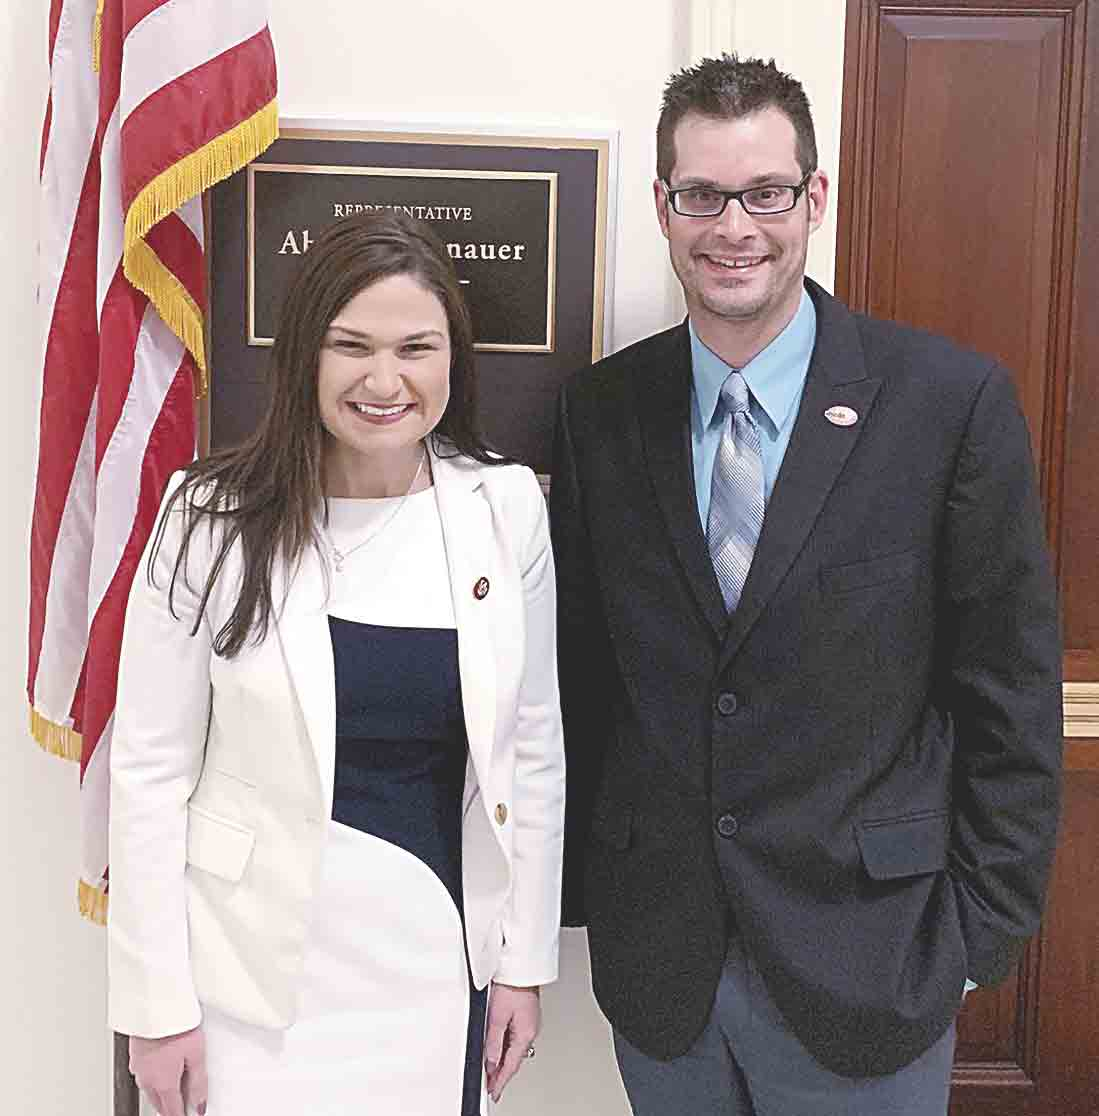 Jesse Wegner (right) of West Union pictured with Iowa's First Congressional District Representative Abby Finkenauer outside her office in the House Office Building before the State of the Union address on Tuesday, Feb. 5. (Submitted photo)Local resident invited to...